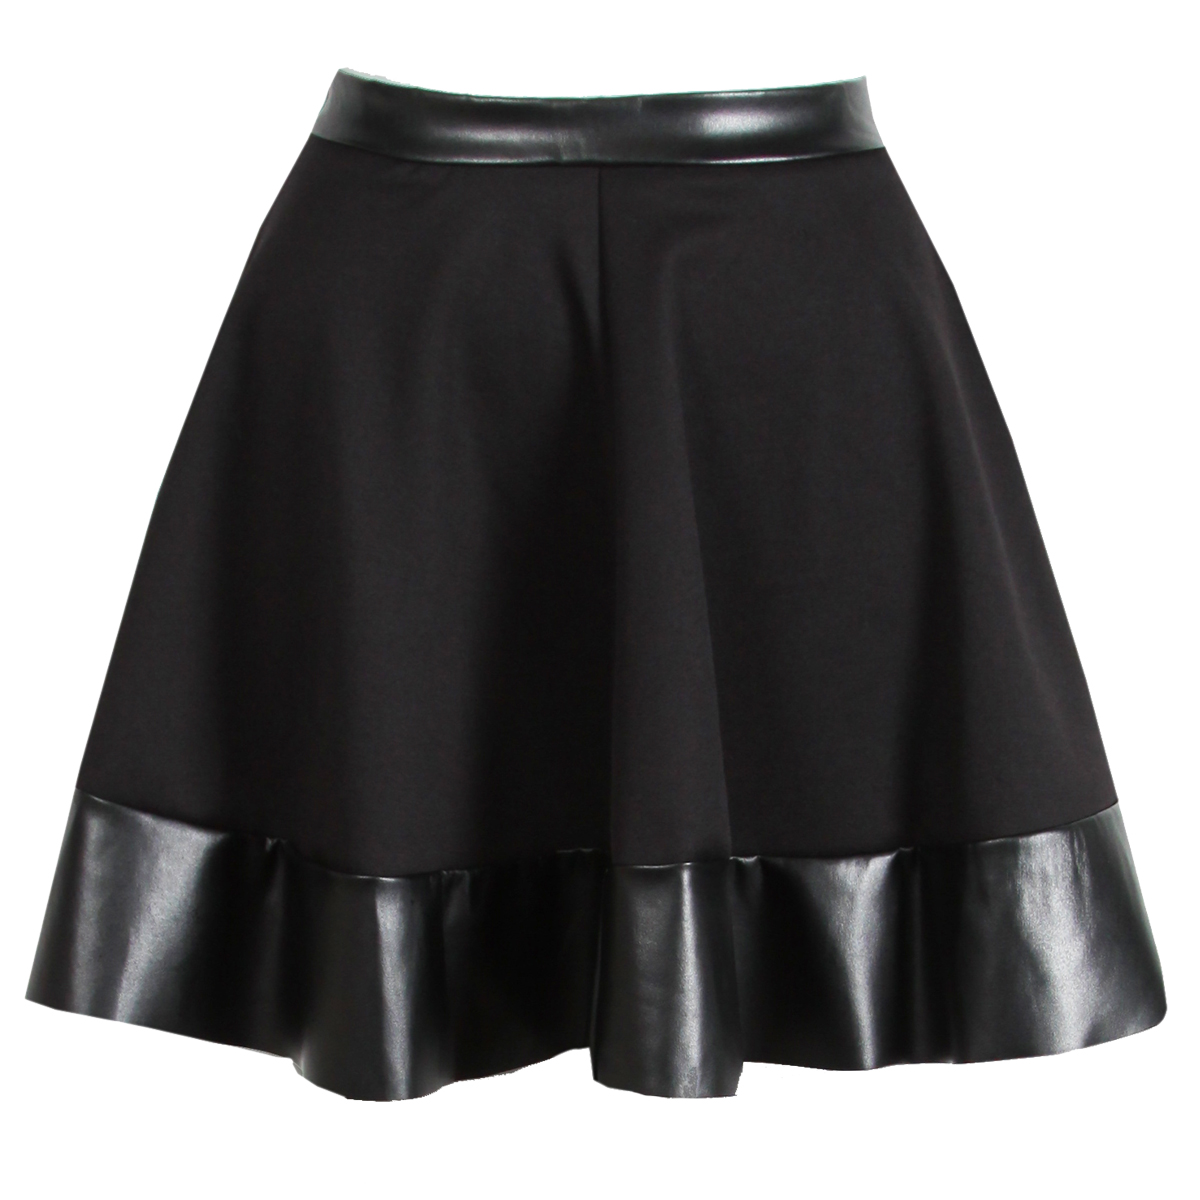 NEW-WOMENS-BLACK-PU-LEATHER-TRIM-SKATER-SKIRT-MINI-PARTY-HIGH-WAISTED-BOX